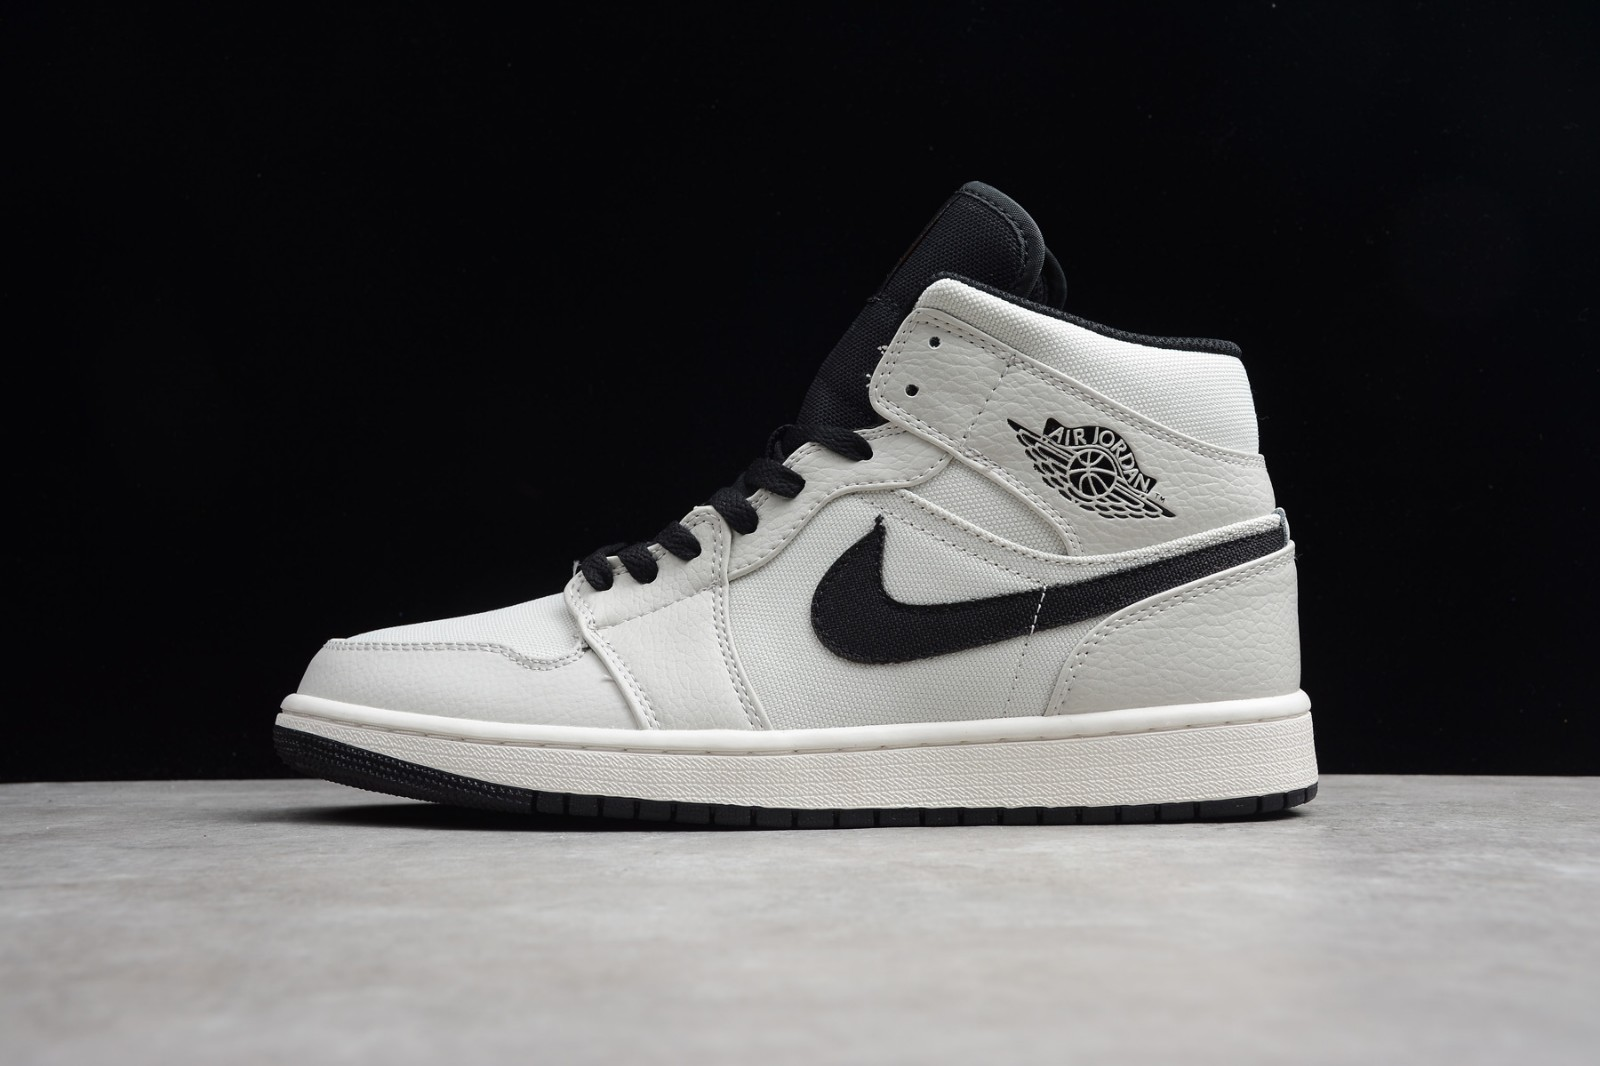 40c53b9a51d157 Prev Nike Air Jordan 1 Mid SE Canvas Light Bone Cone Black Sail 852542-002